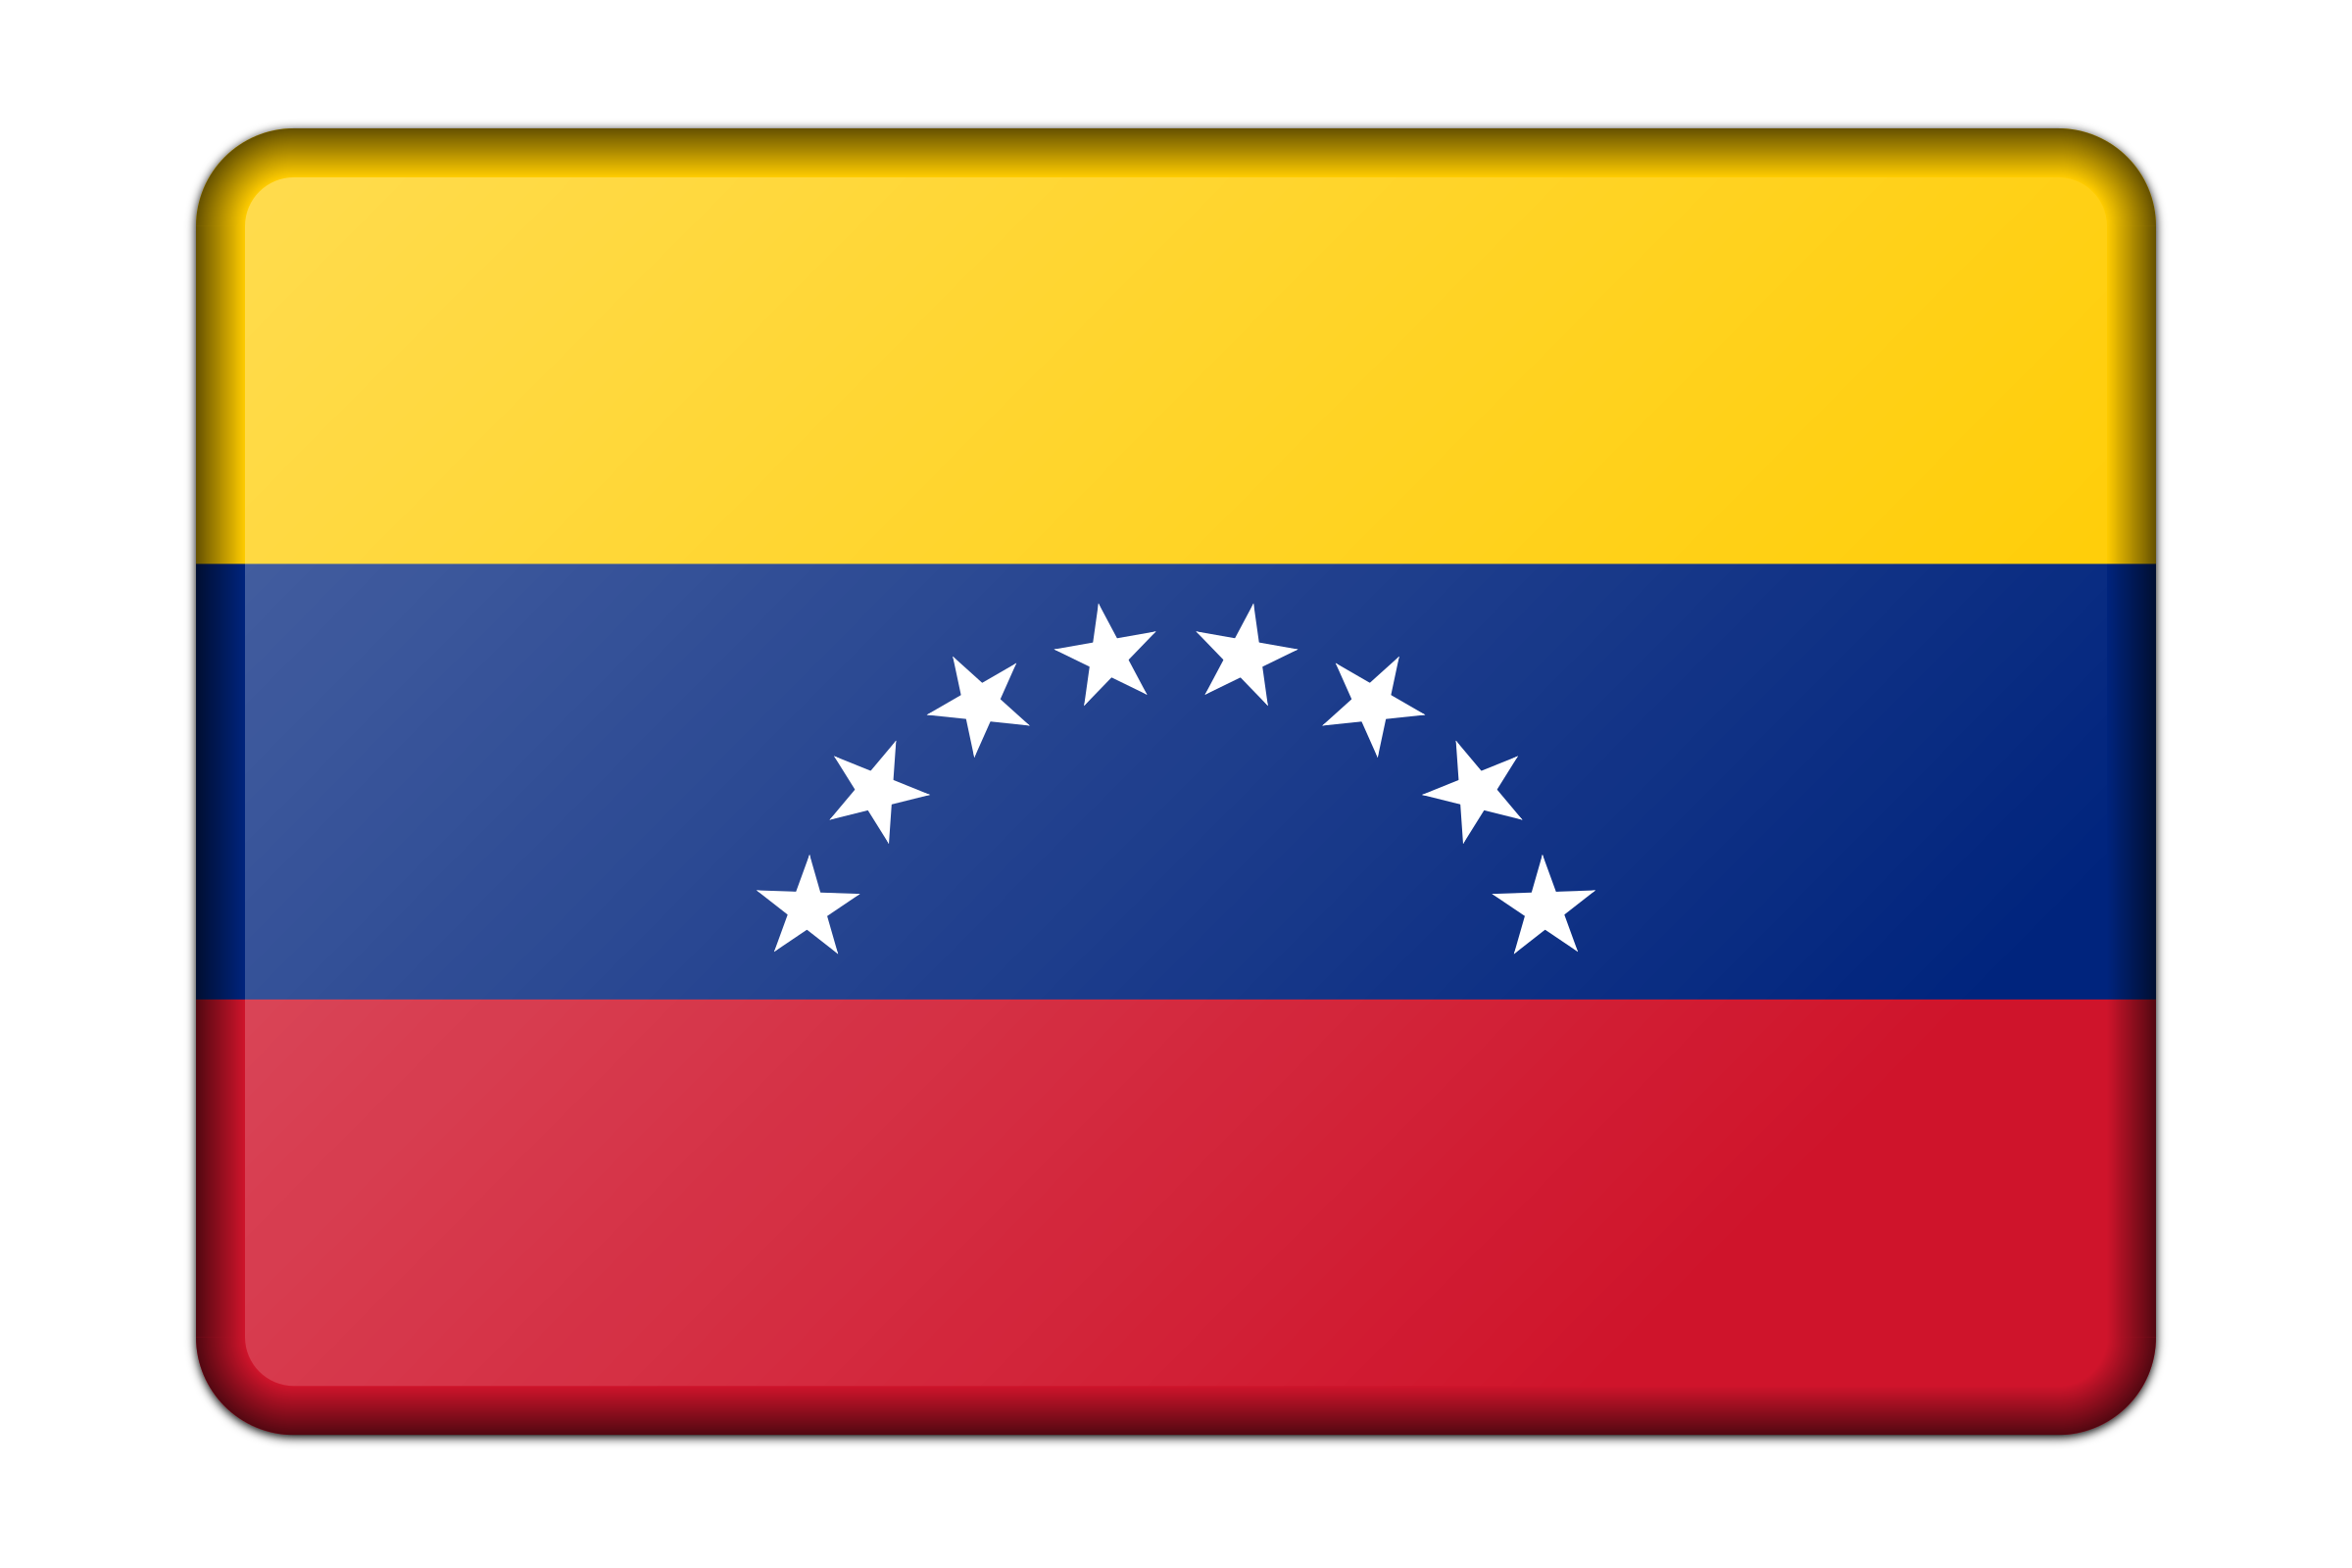 Flag of Venezuela (bevelled) by Firkin